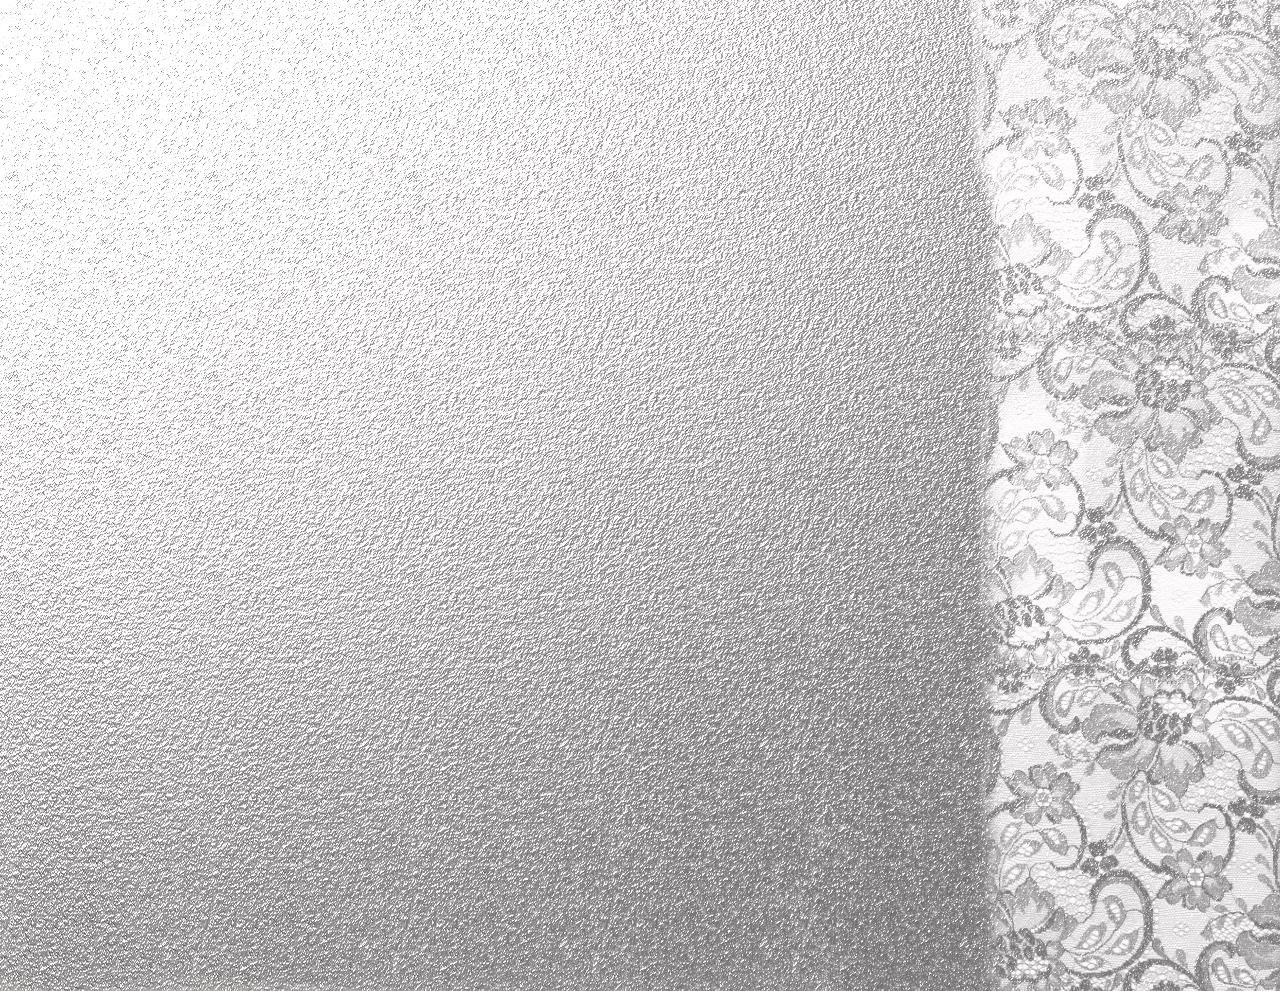 White and silver metallic wallpaper wallpapersafari for Metallic wallpaper